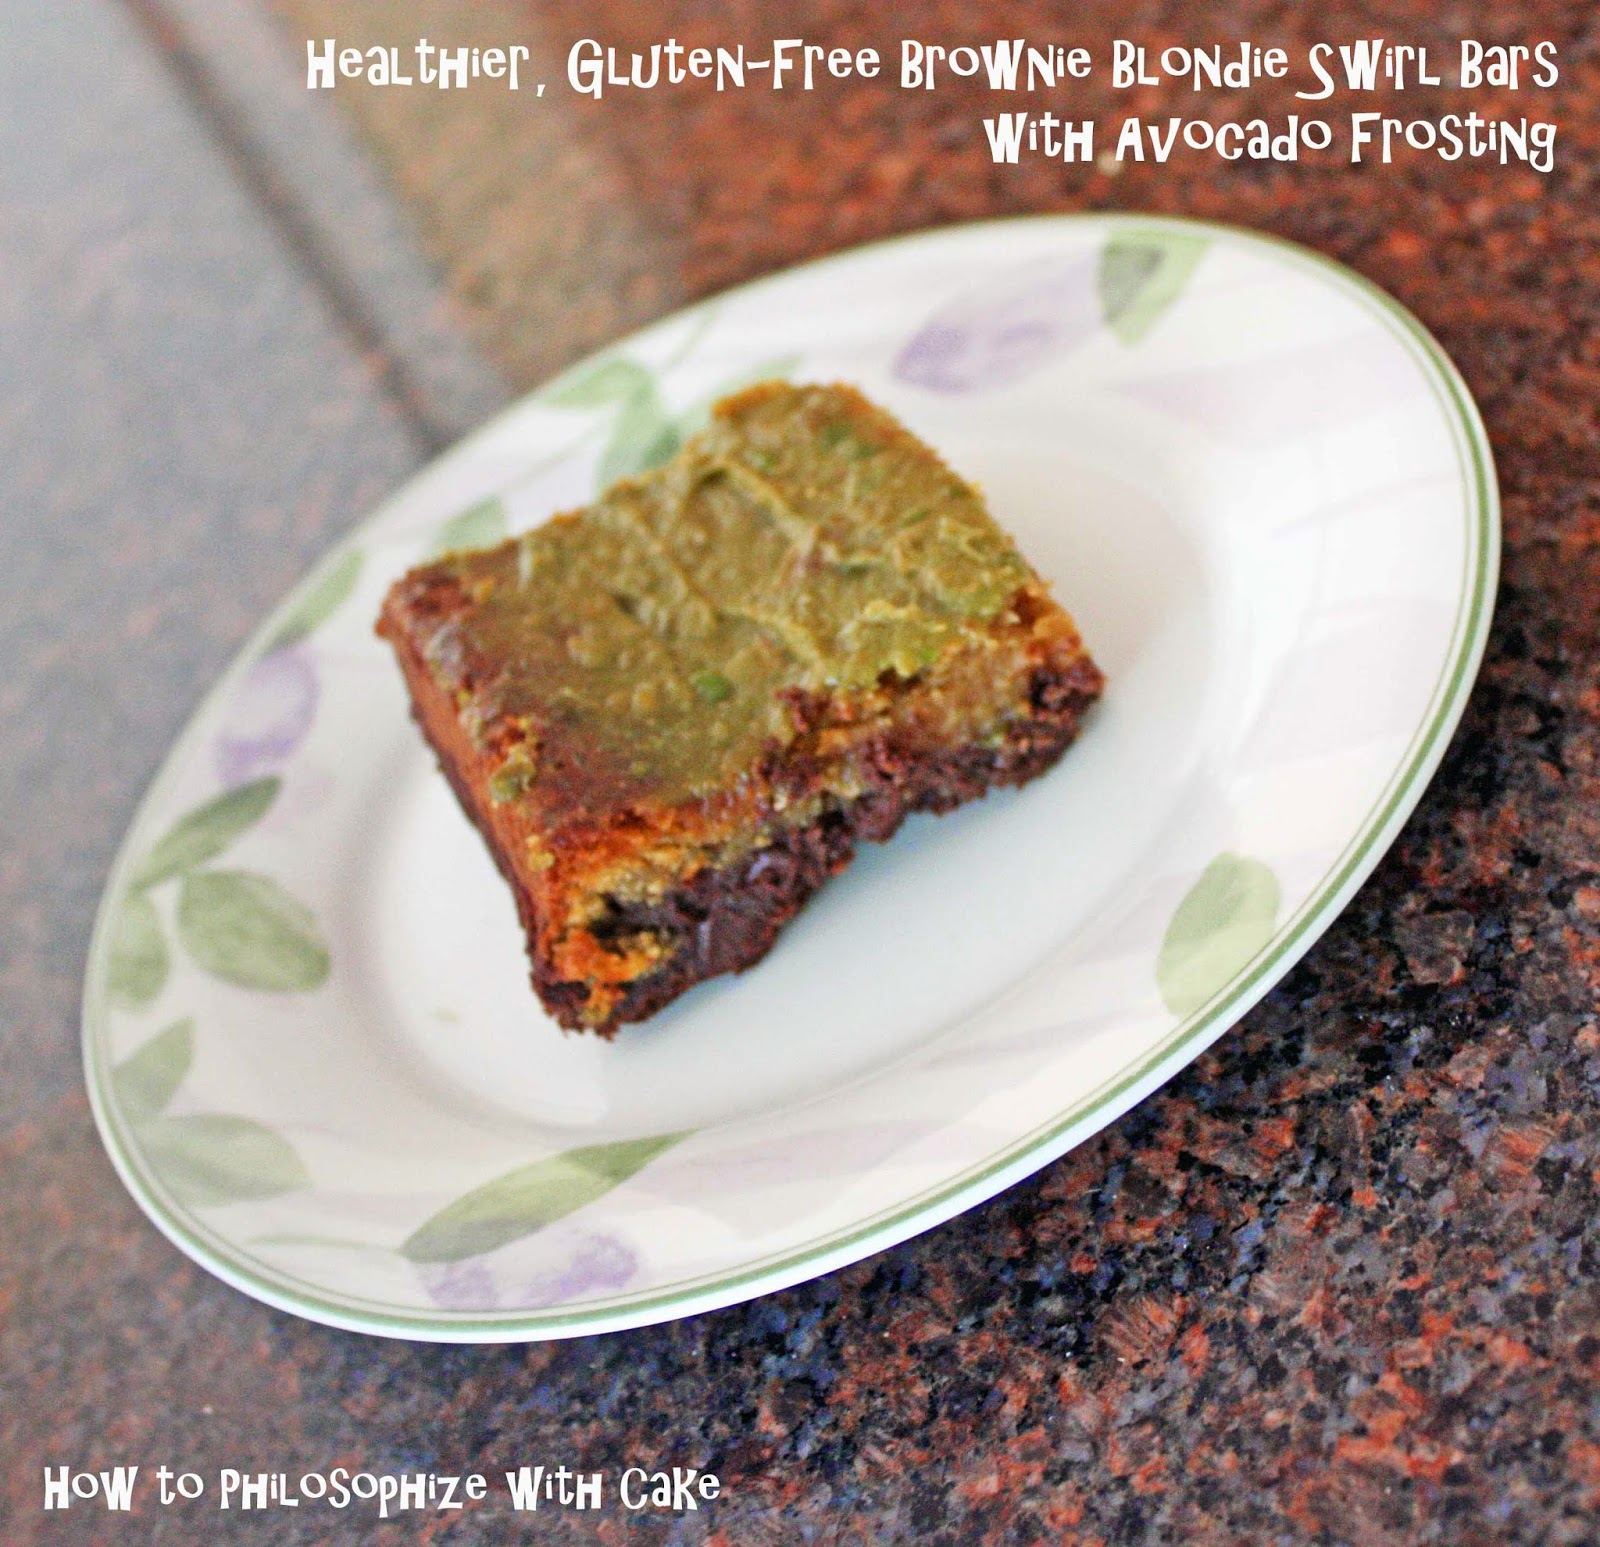 healthier, gluten free blondie brownie swirl bars with avocado frosting how to philosophize with cake